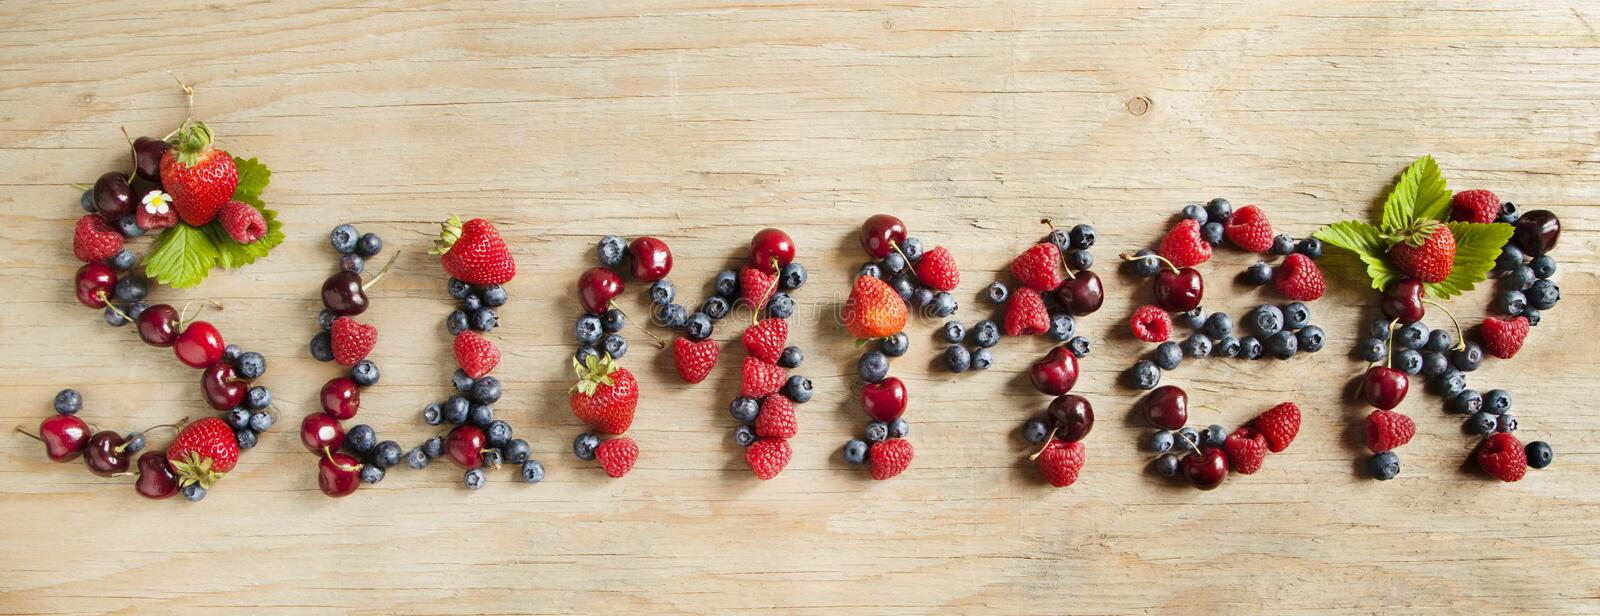 Assortment of summer fresh berries forming the word stock photos